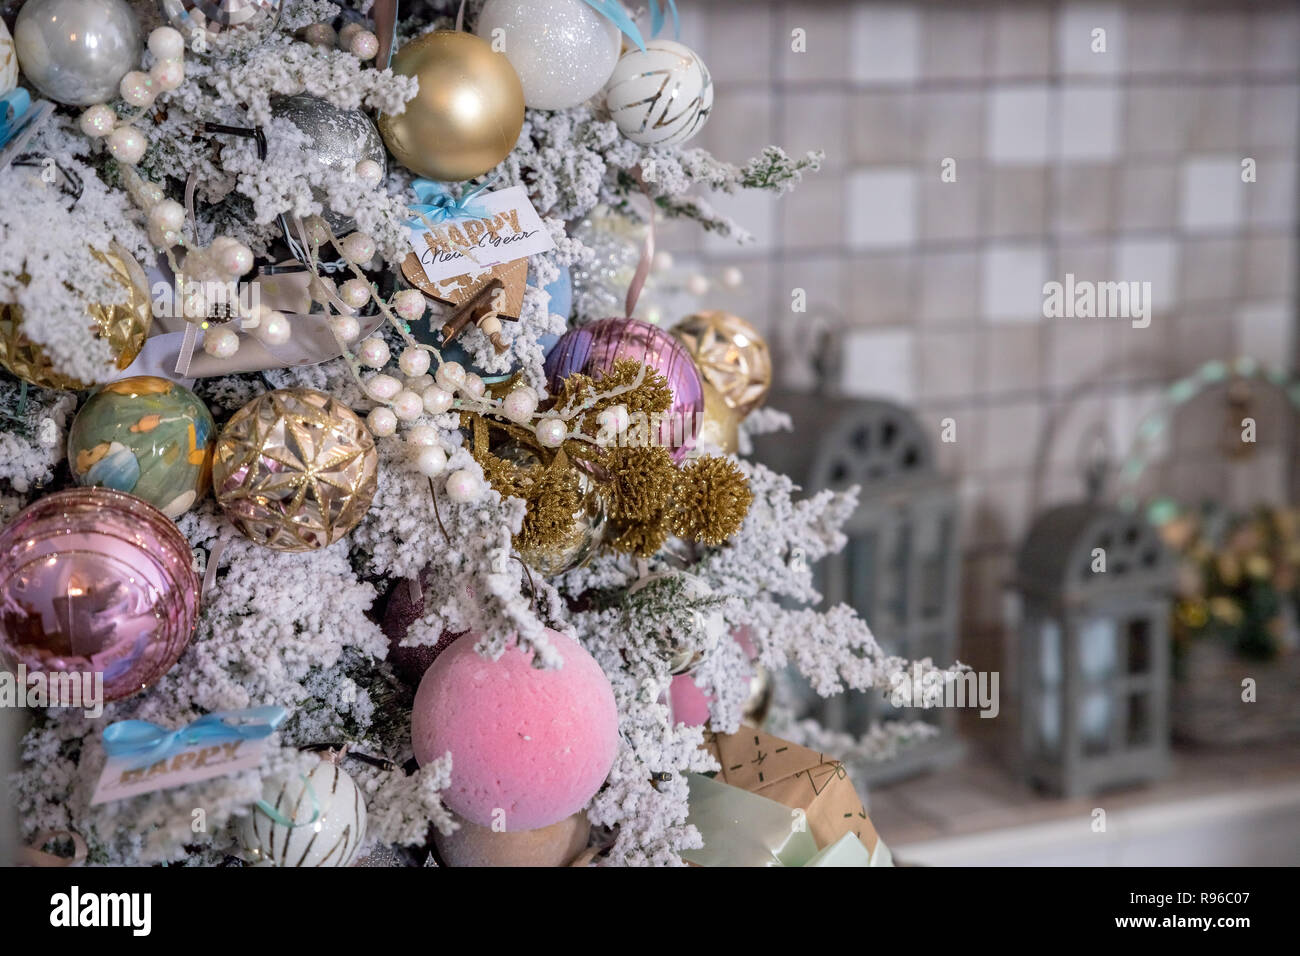 Close Up Of Christmas Tree Decoration With Gold Silver Pink And White Tinsel Glitter Balls And A Snowflake Star Festive Home Decoration Christmas Ornaments Beautiful Decorated Christmas Tree Copy Space Stock Photo Alamy